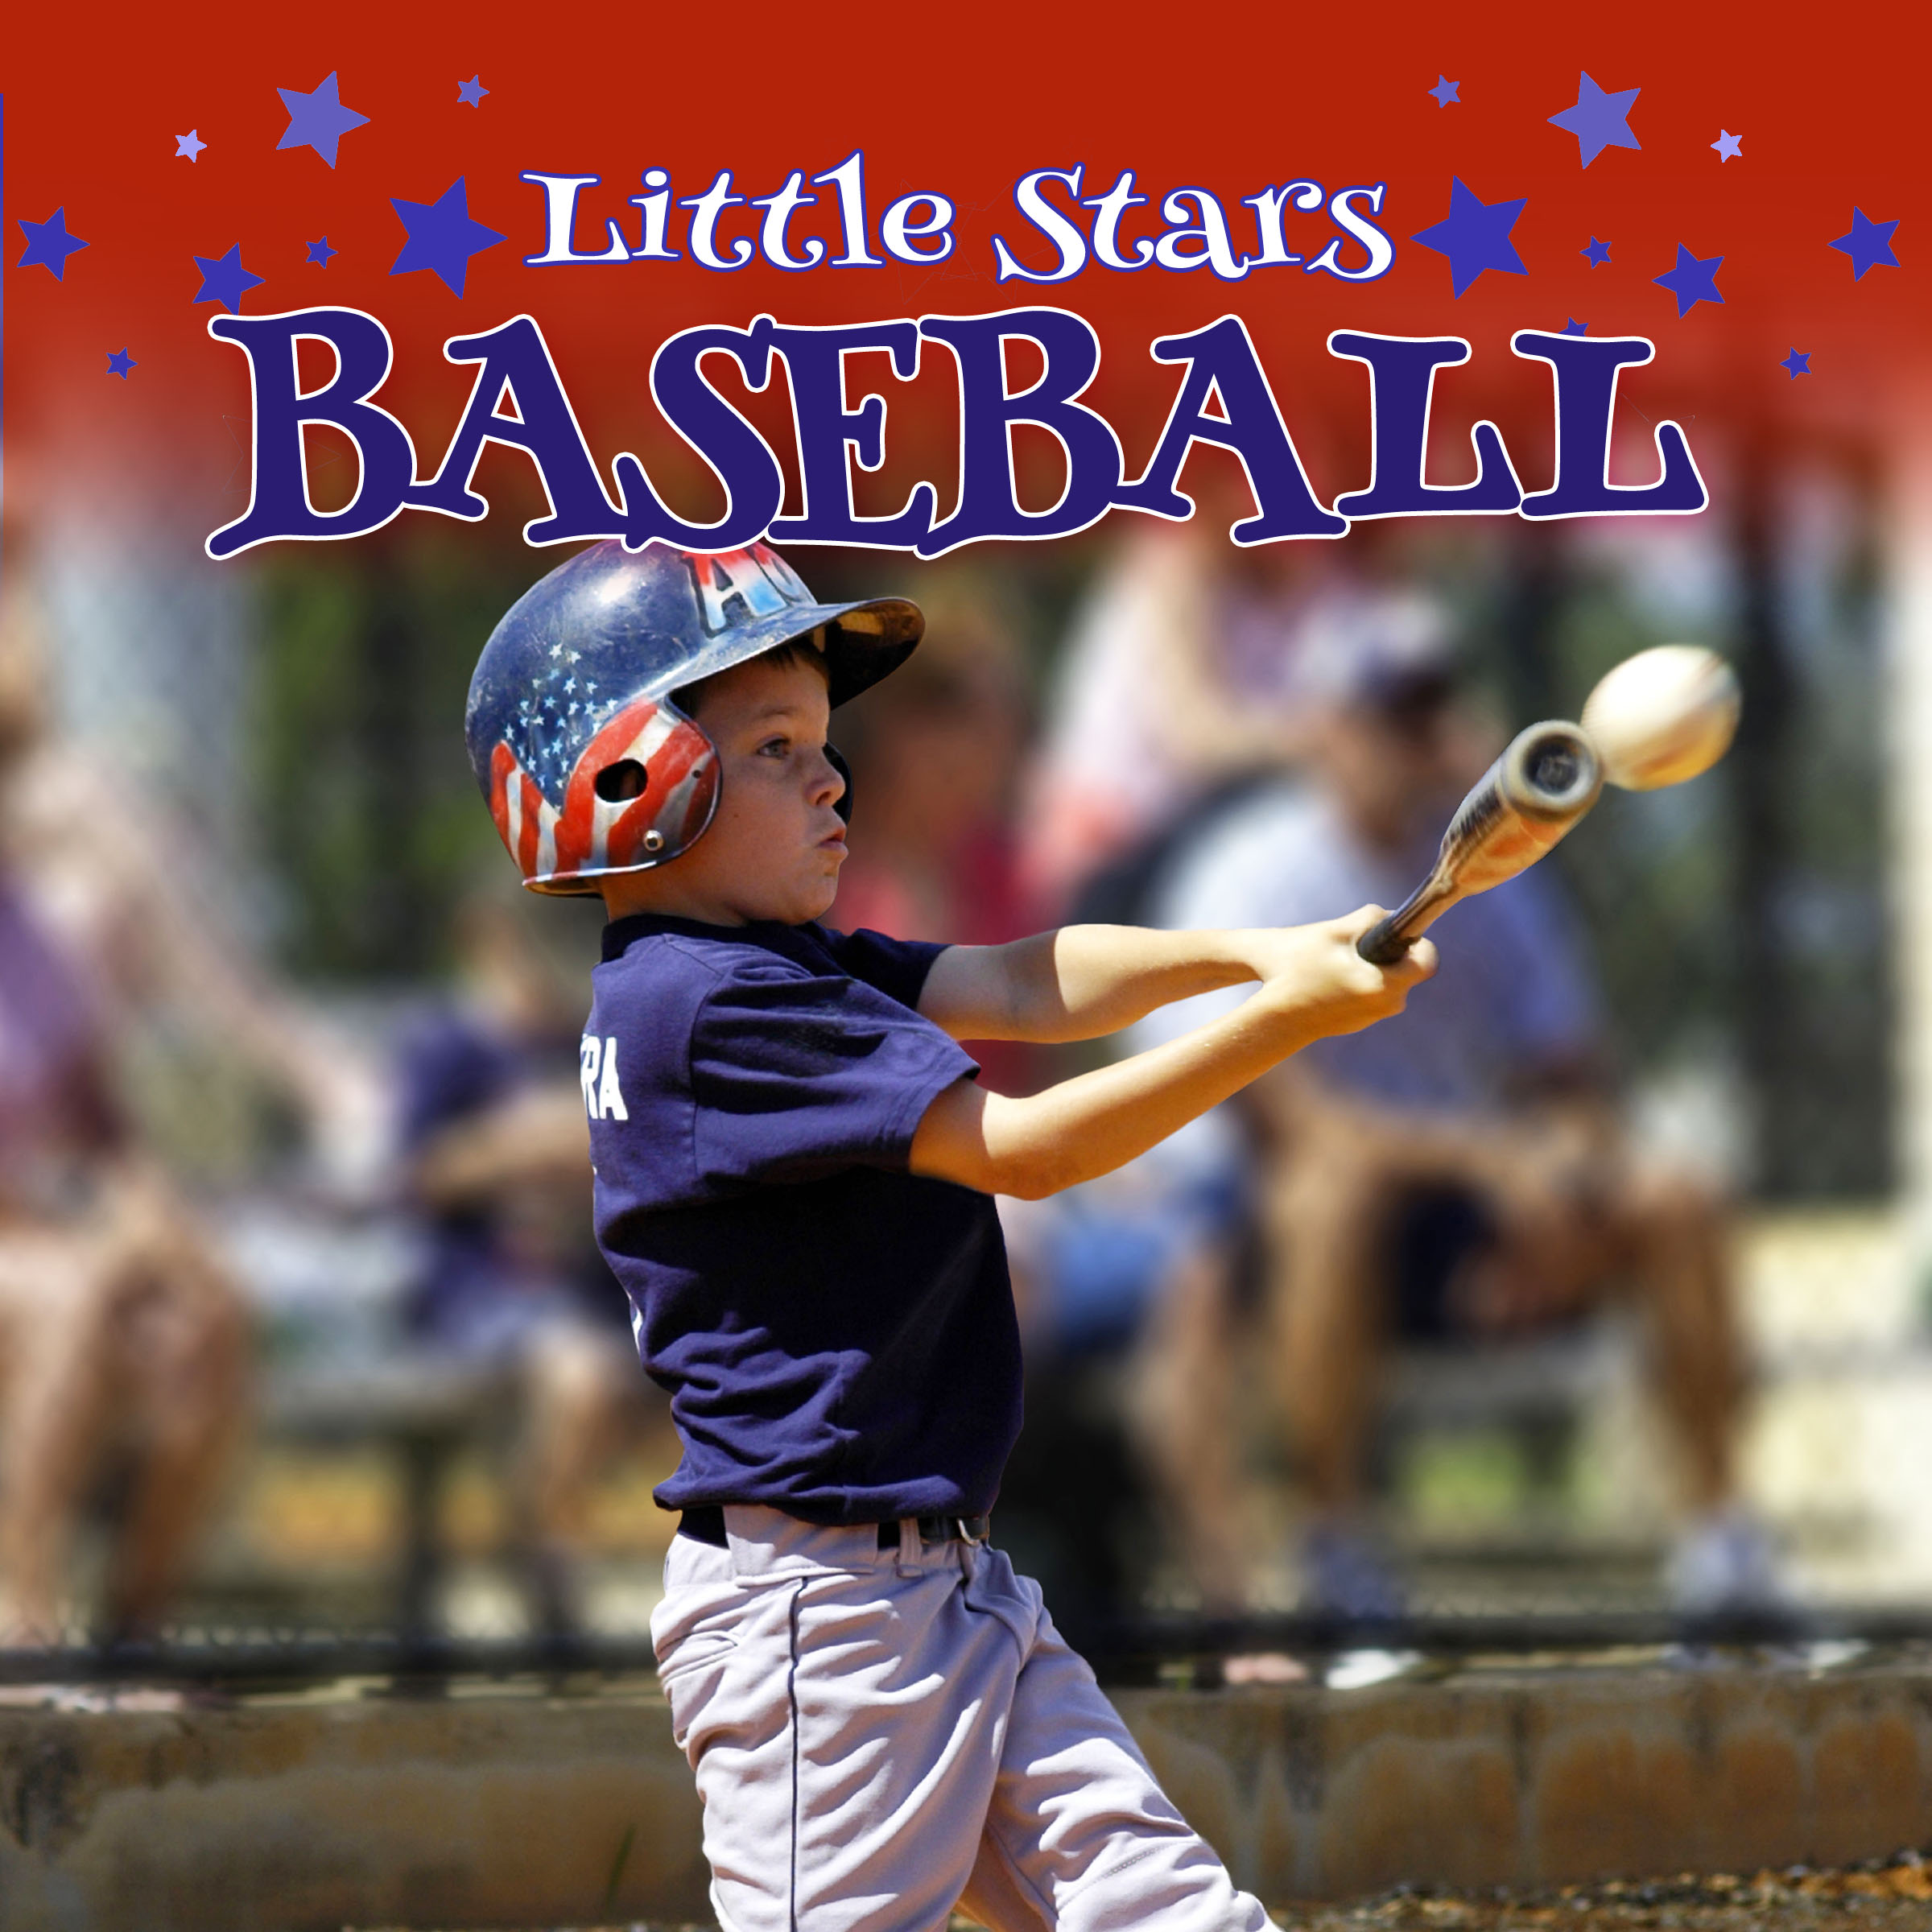 Little Stars Baseball